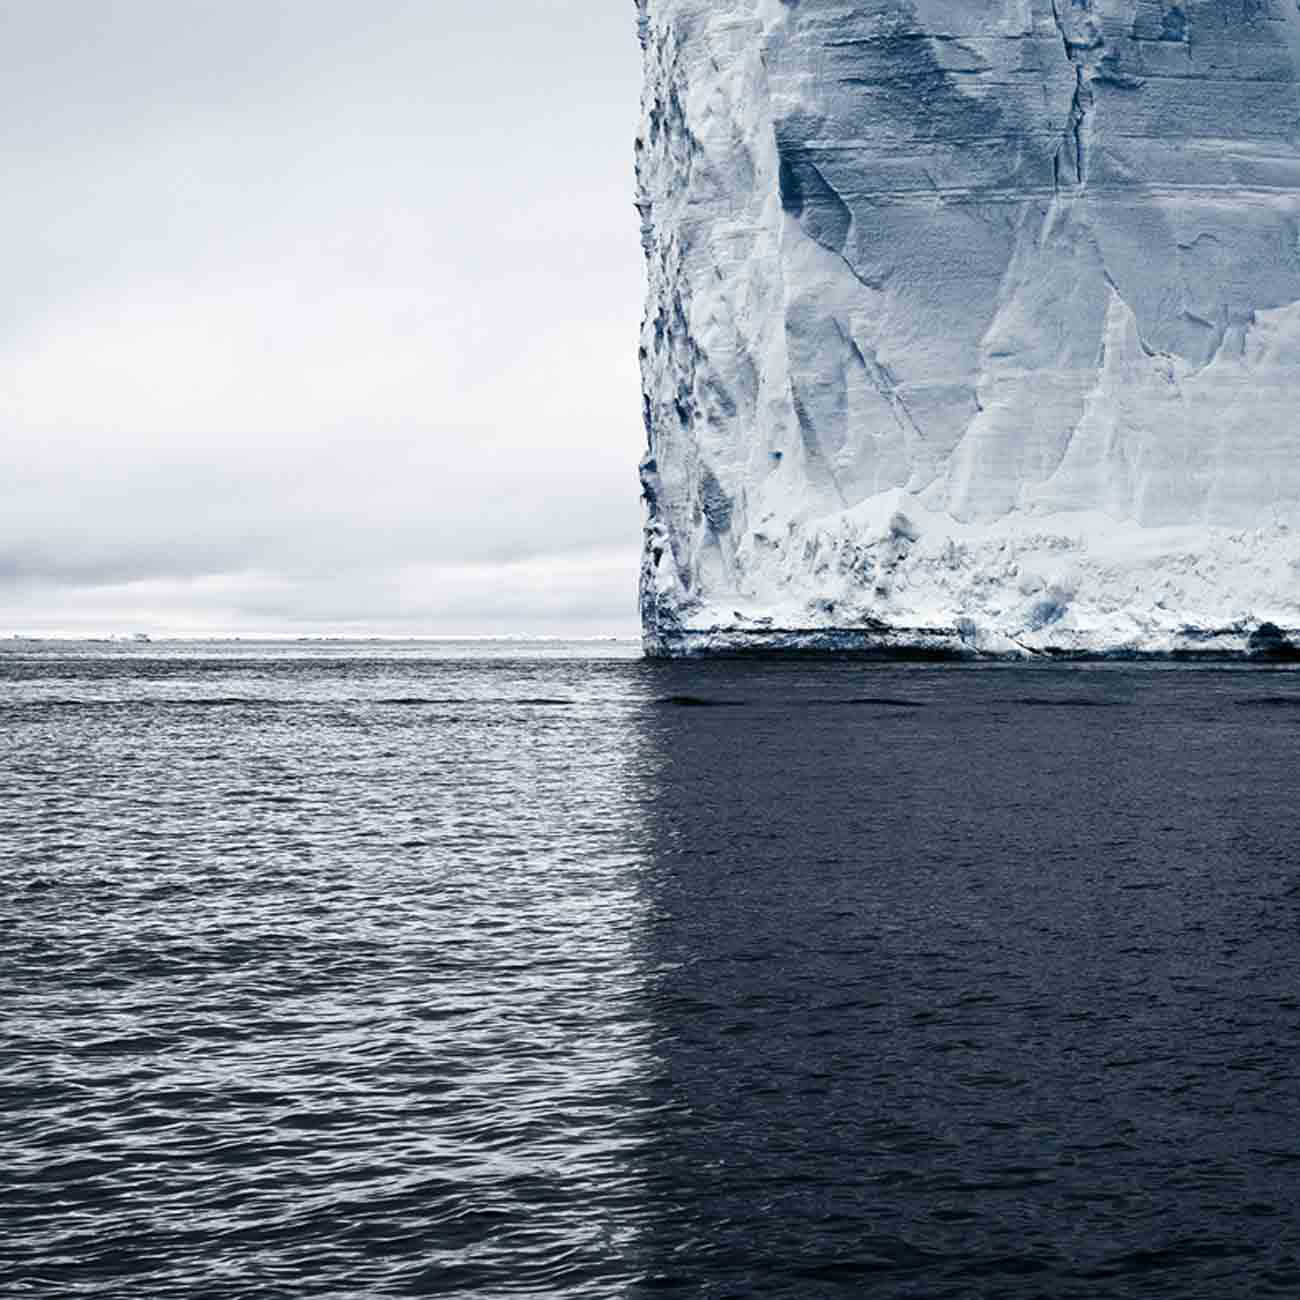 Mercators Projection, Antarctica, 2007 - David Burdeny